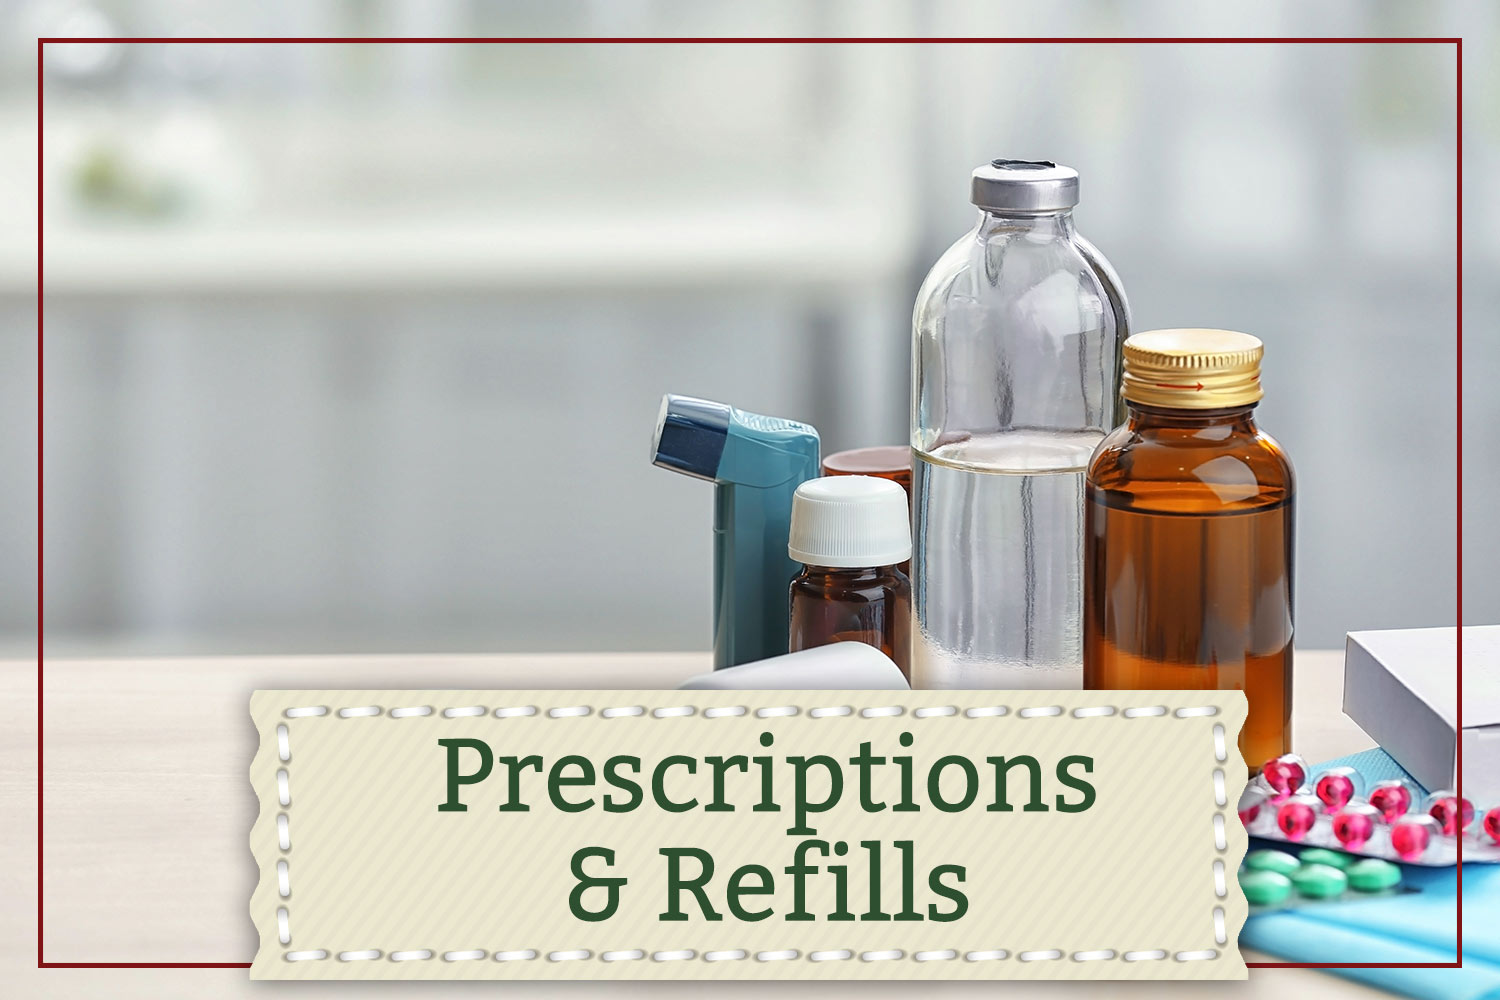 prescriptions-and-refills-service.jpg